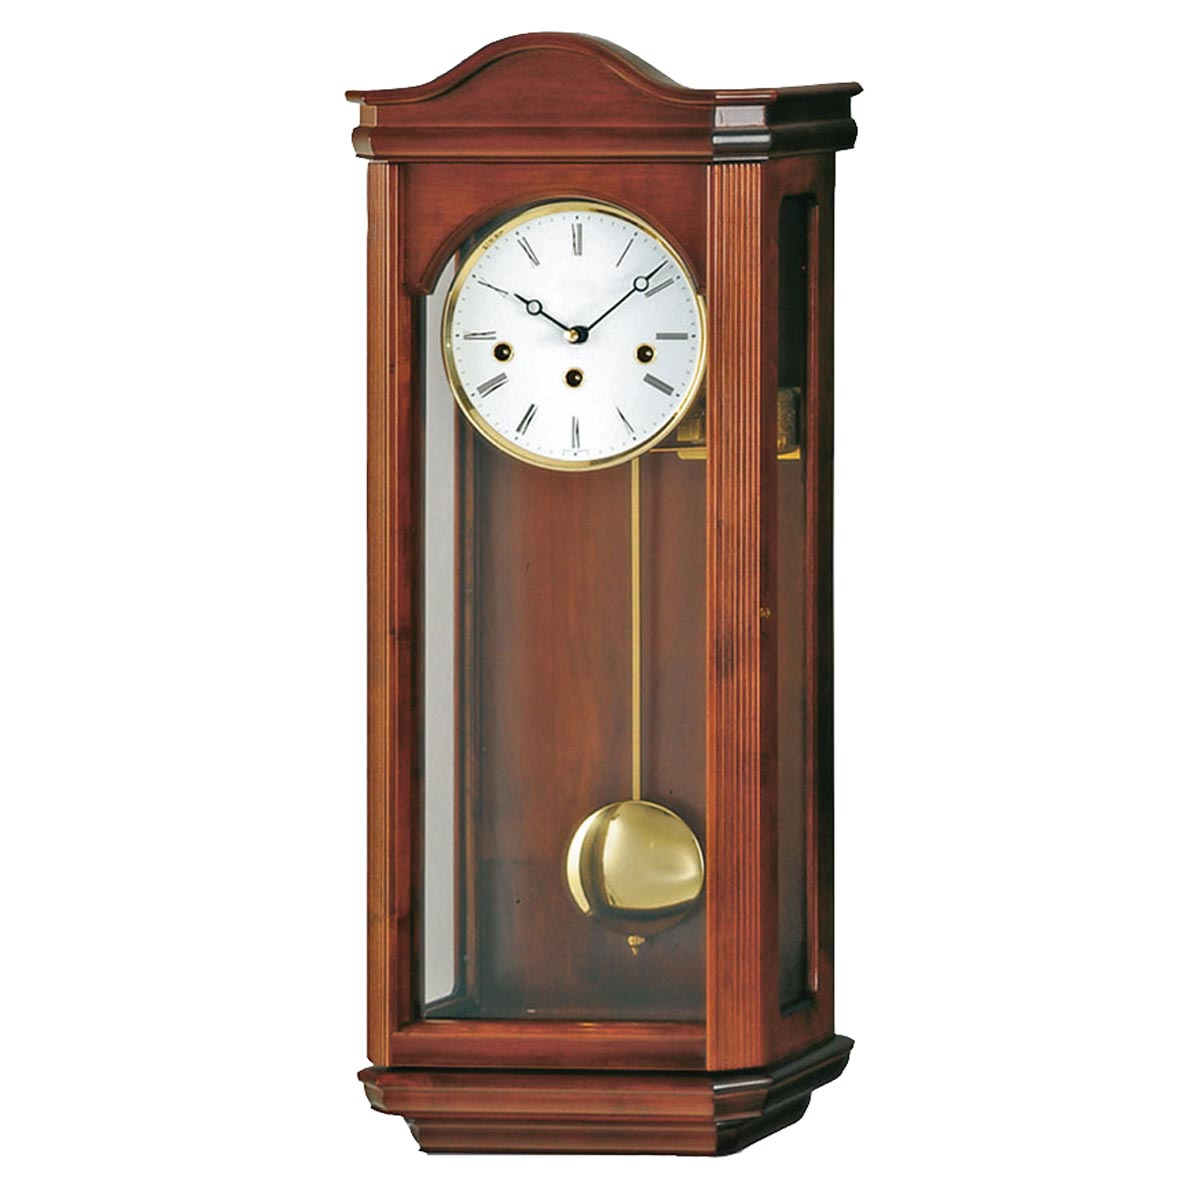 NORTON Regulator Wall Clock